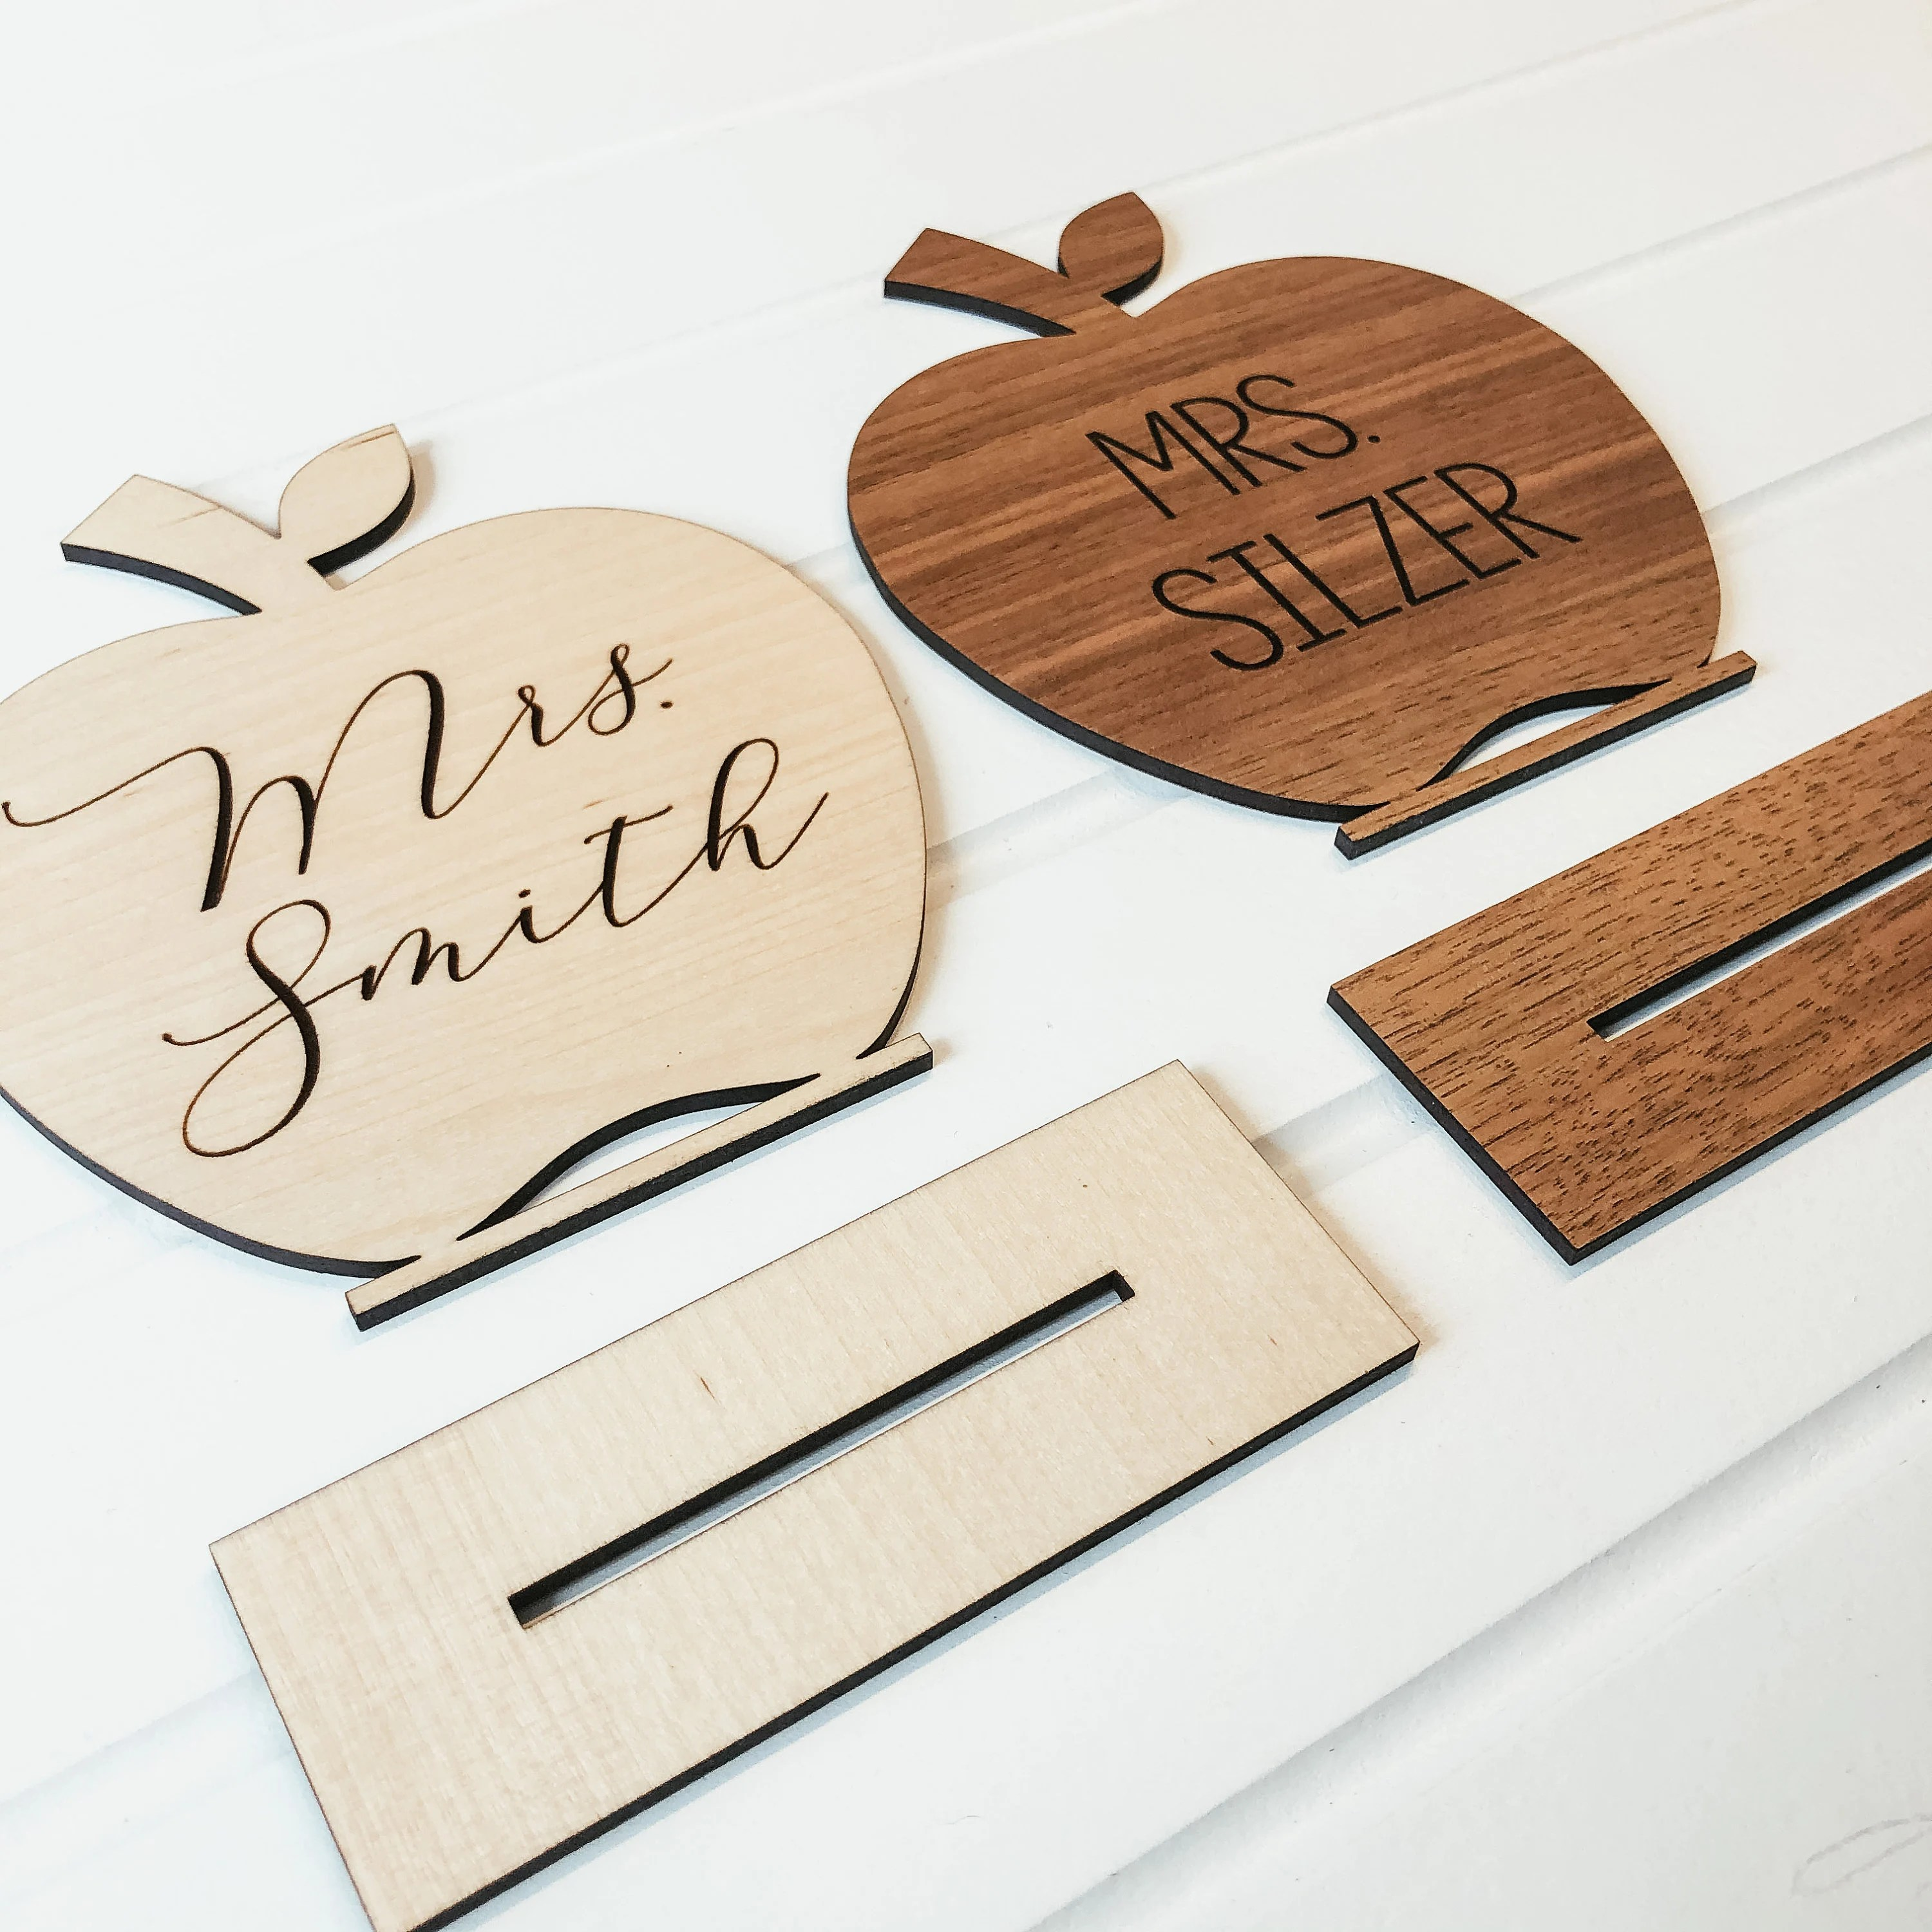 Personalized Desk Name Sign Wooden Apple Teacher Desk Sign image 2